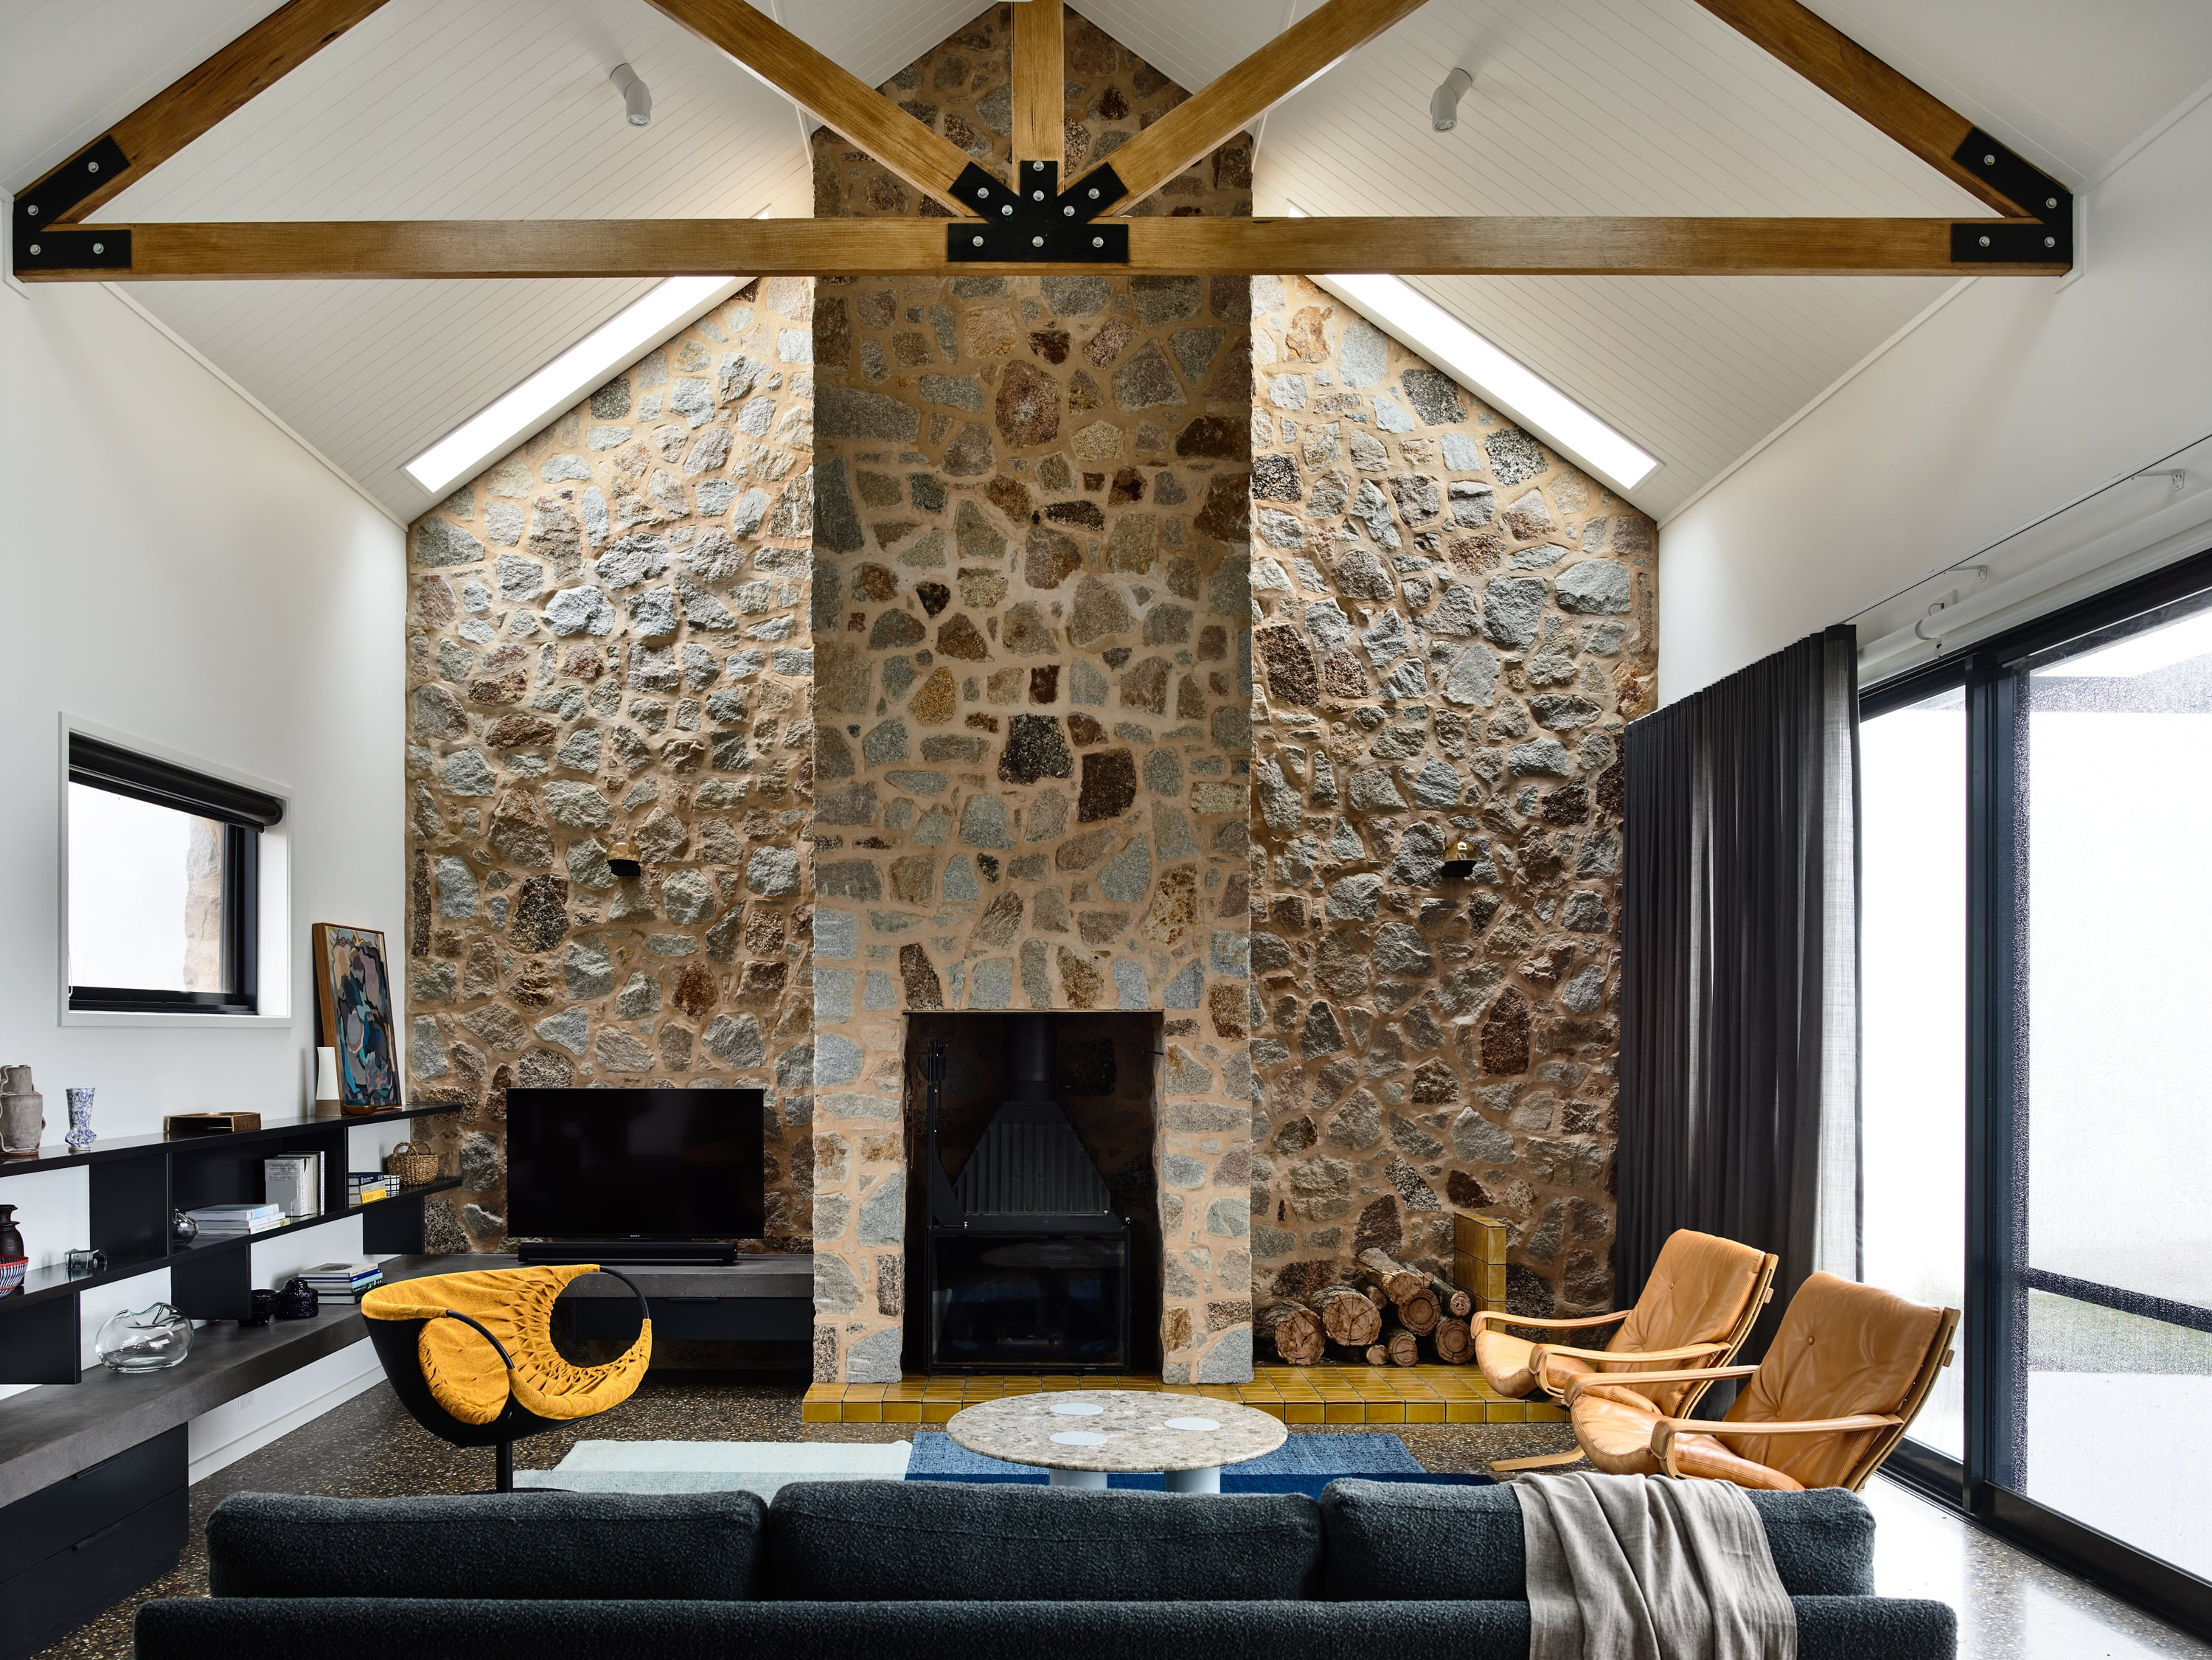 Gallery Of Beechworth Residence By Doherty Design Studio Local Residential Interiors & Architecture Beechworth, Vic Image 12